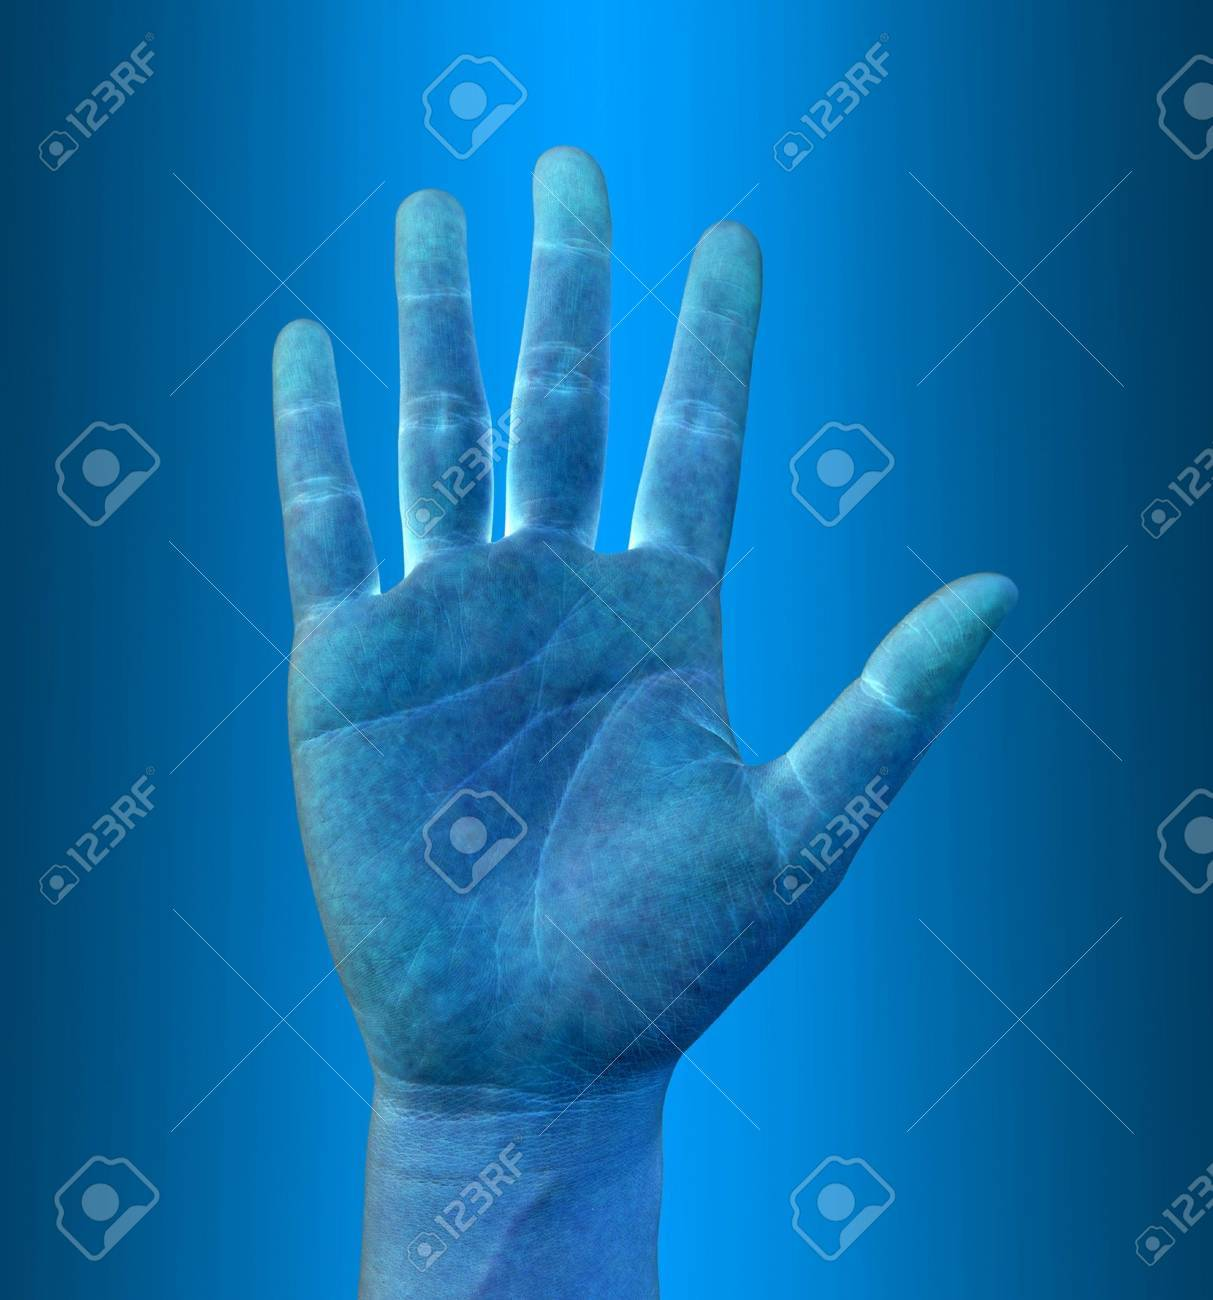 scanning of a hand on a touch screen interface Stock Photo - 12457600